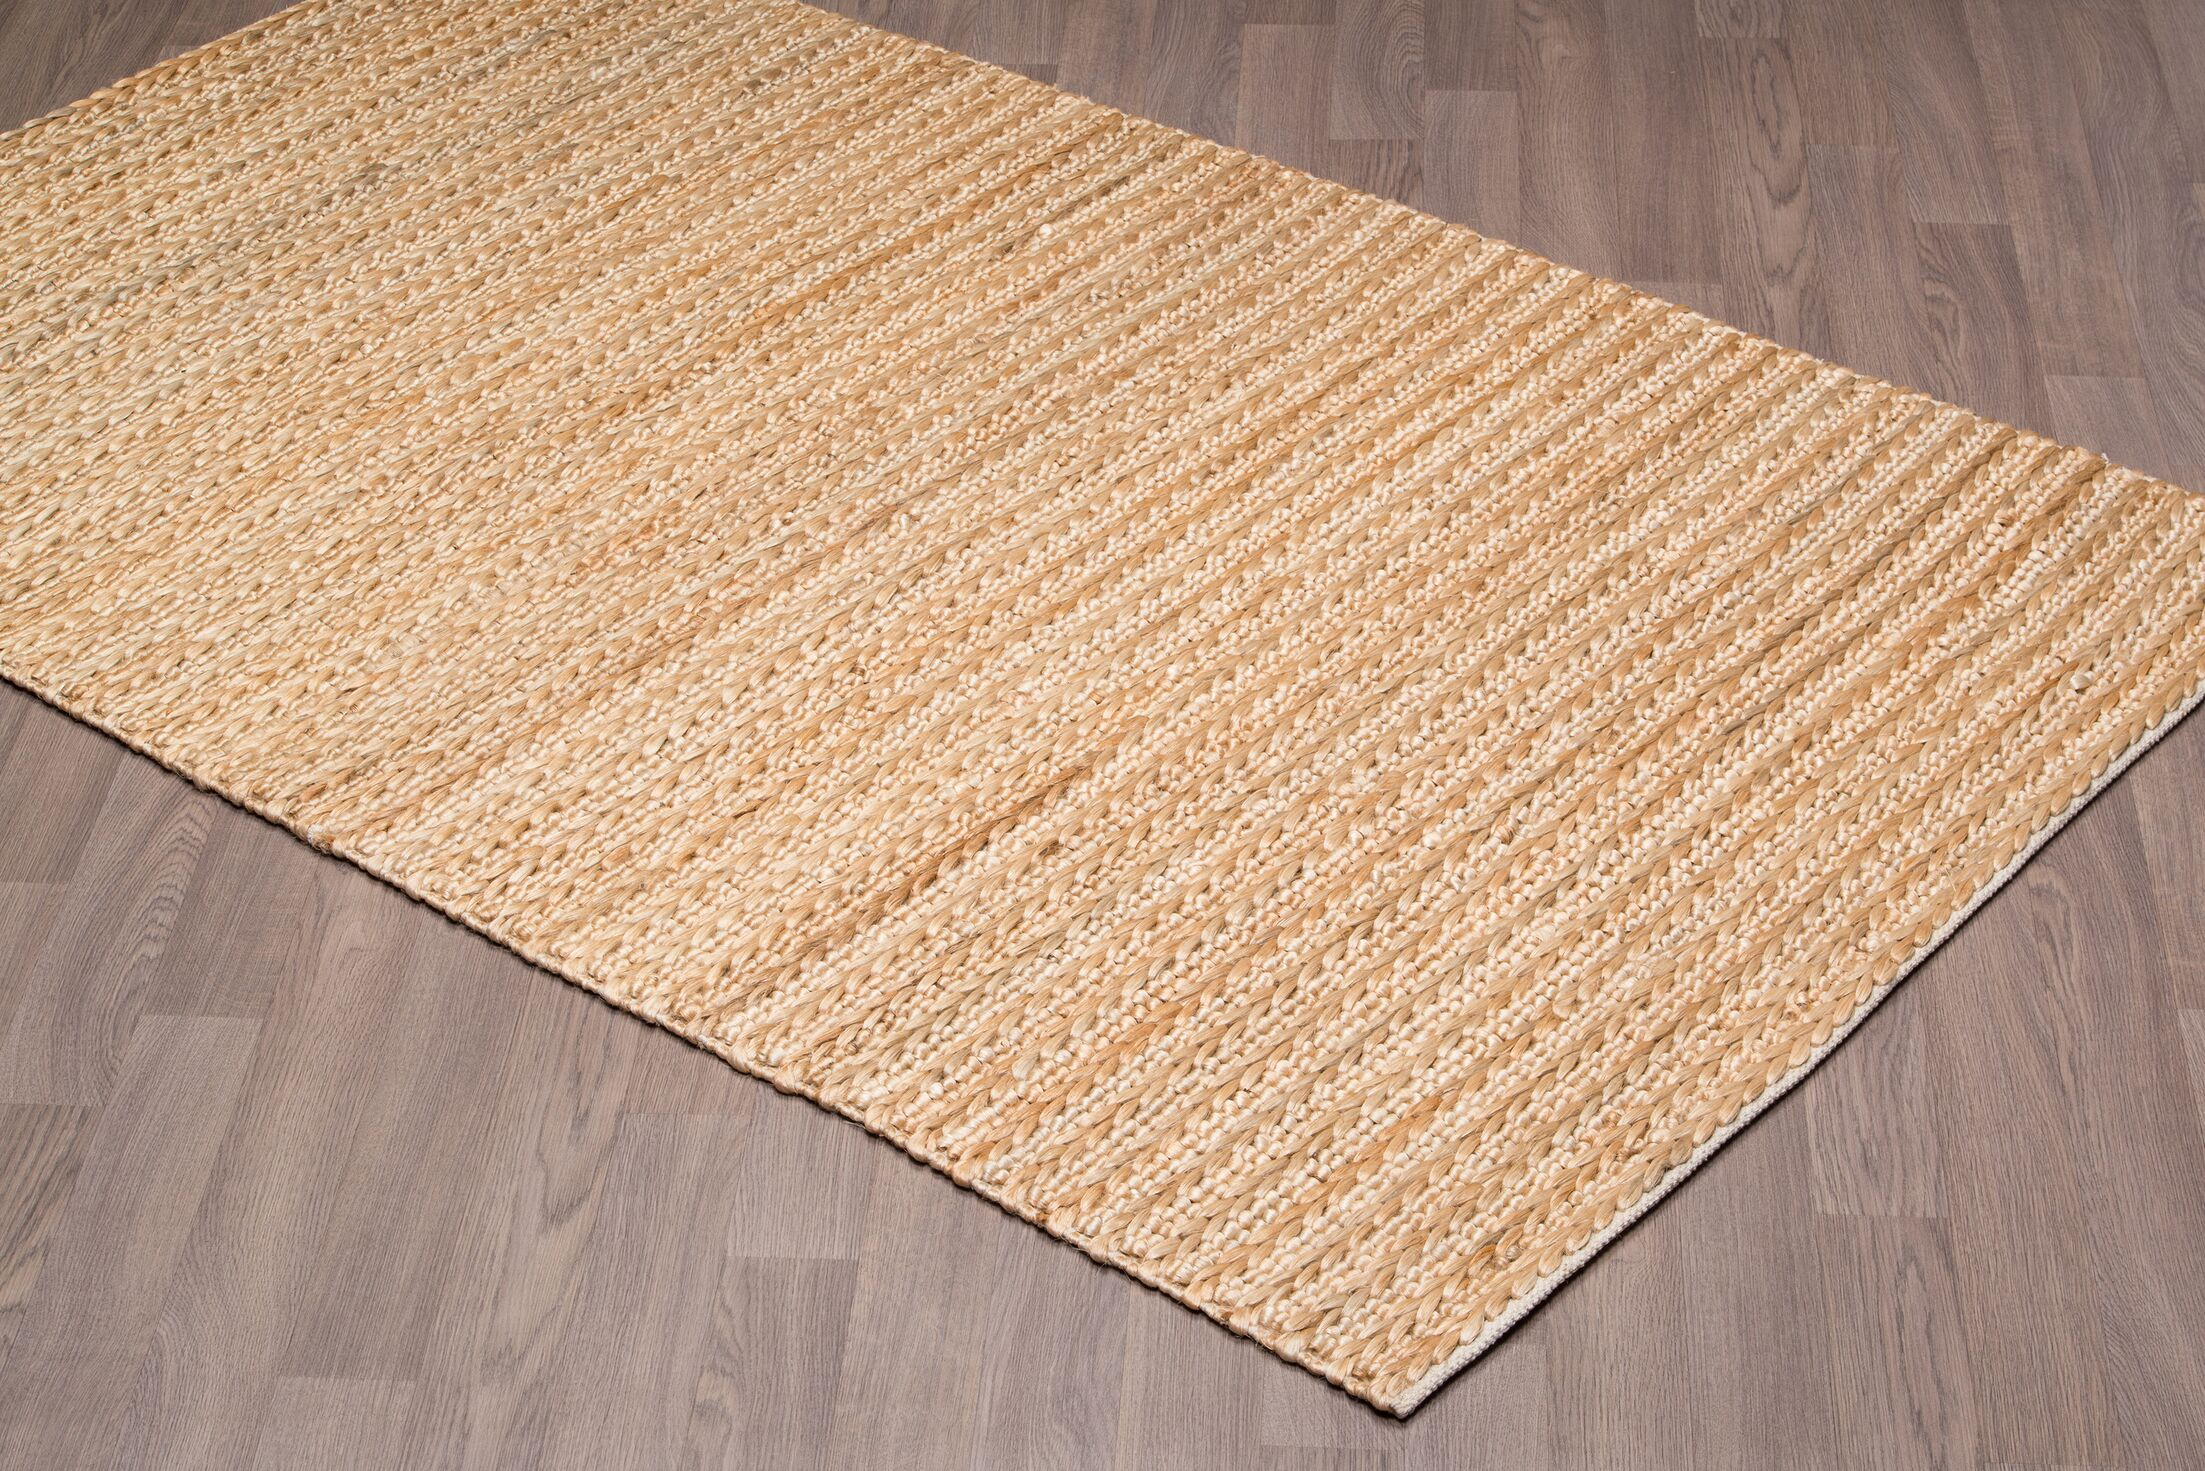 Lanoue Hand-Knotted Beige Area Rug Rug Size: Rectangle 5' x 8'